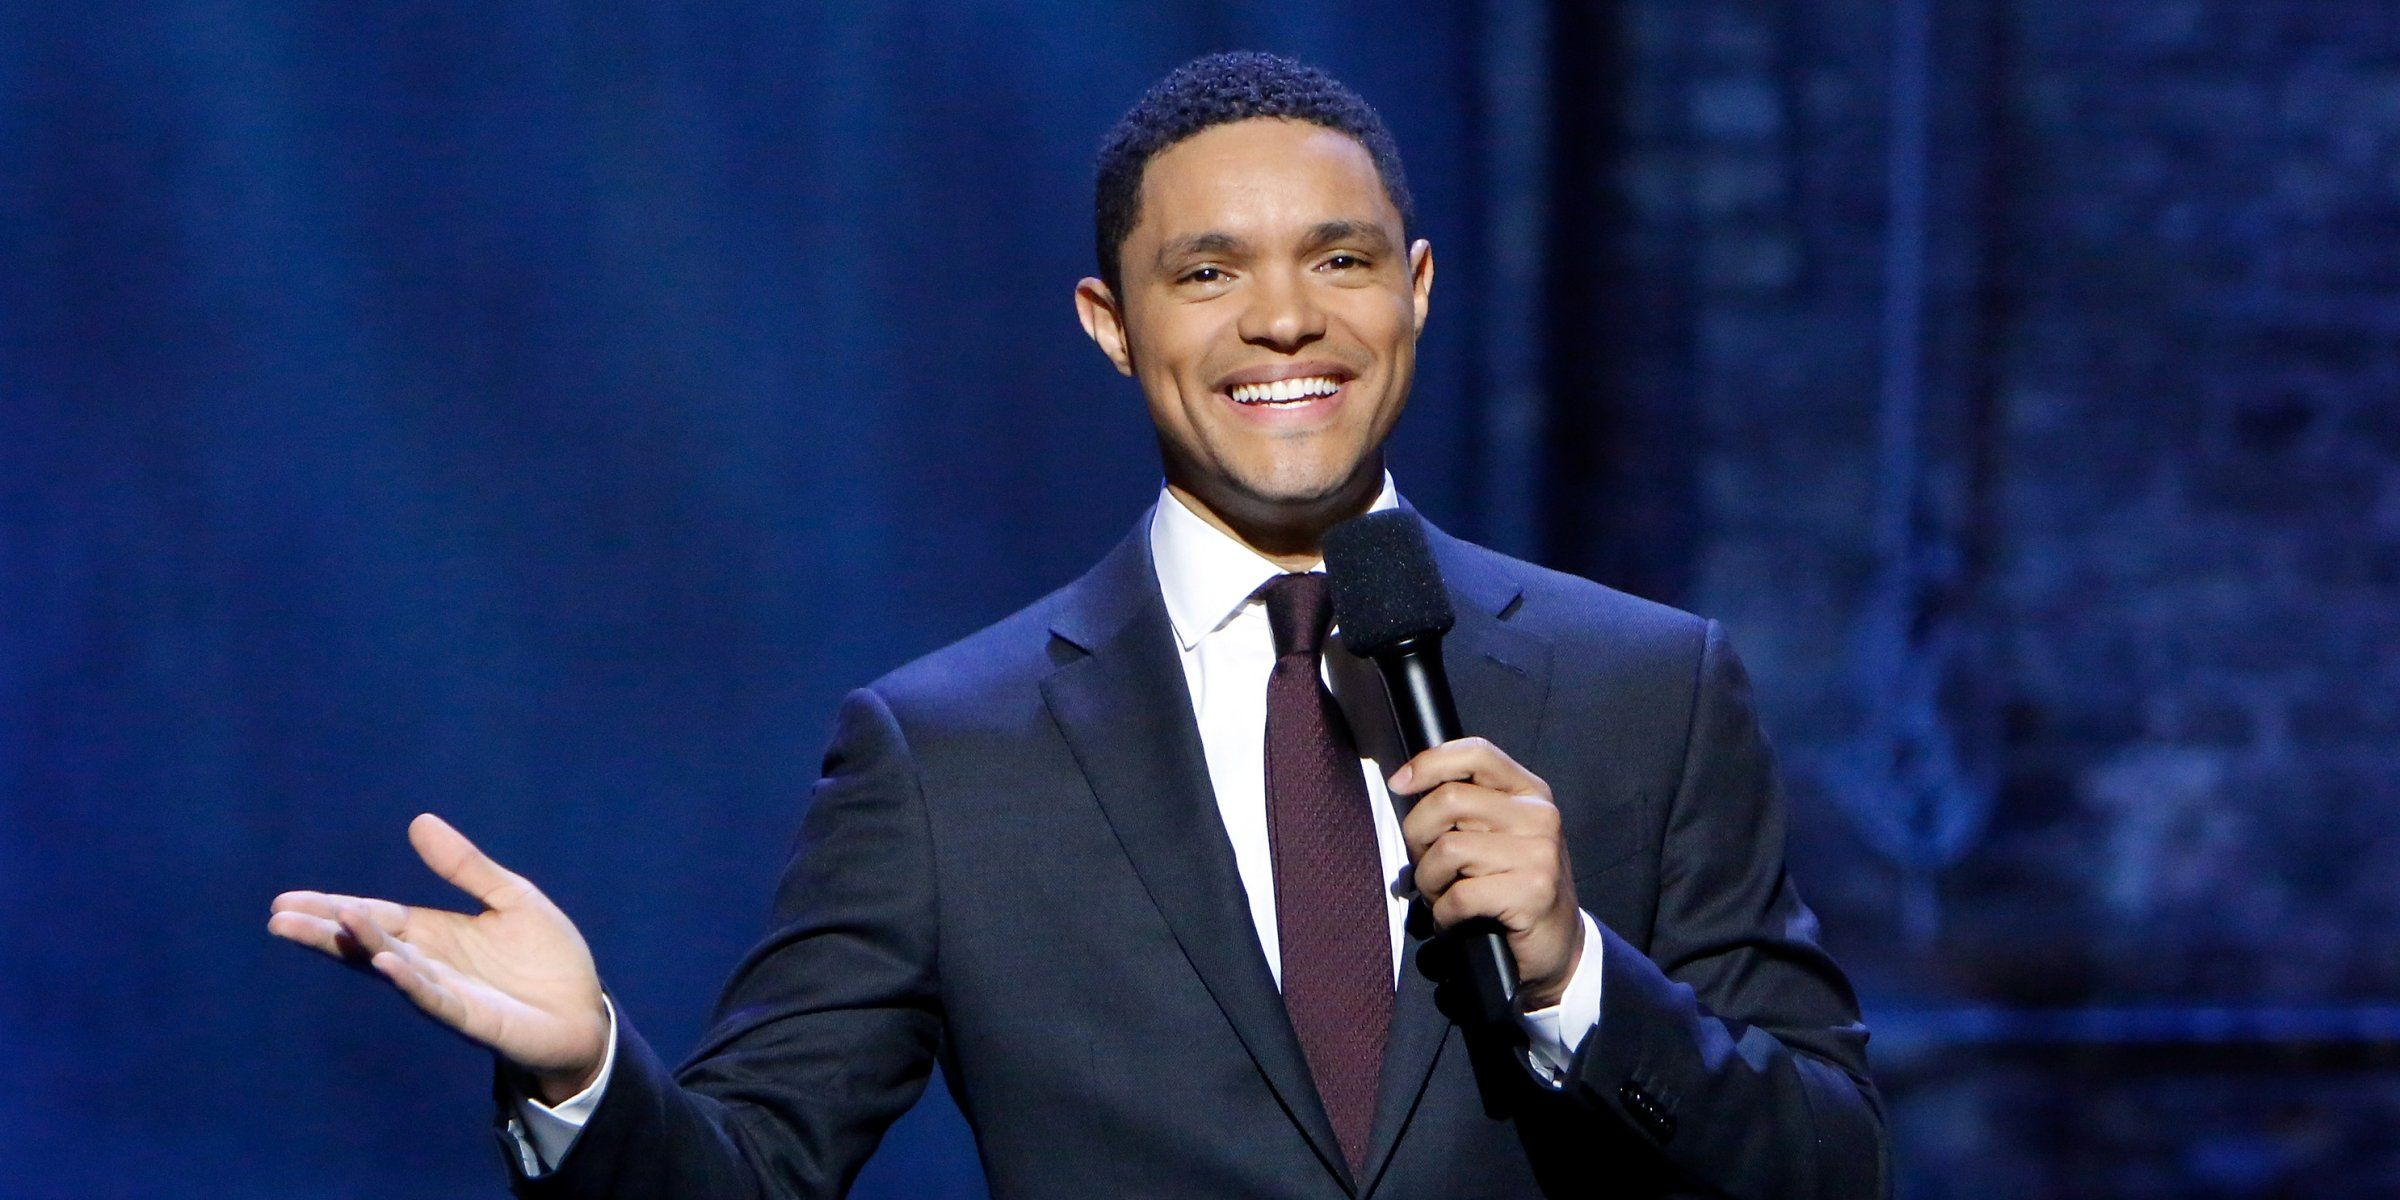 Trevor Noah Had A Totally Under The Radar Cameo In Black Panther